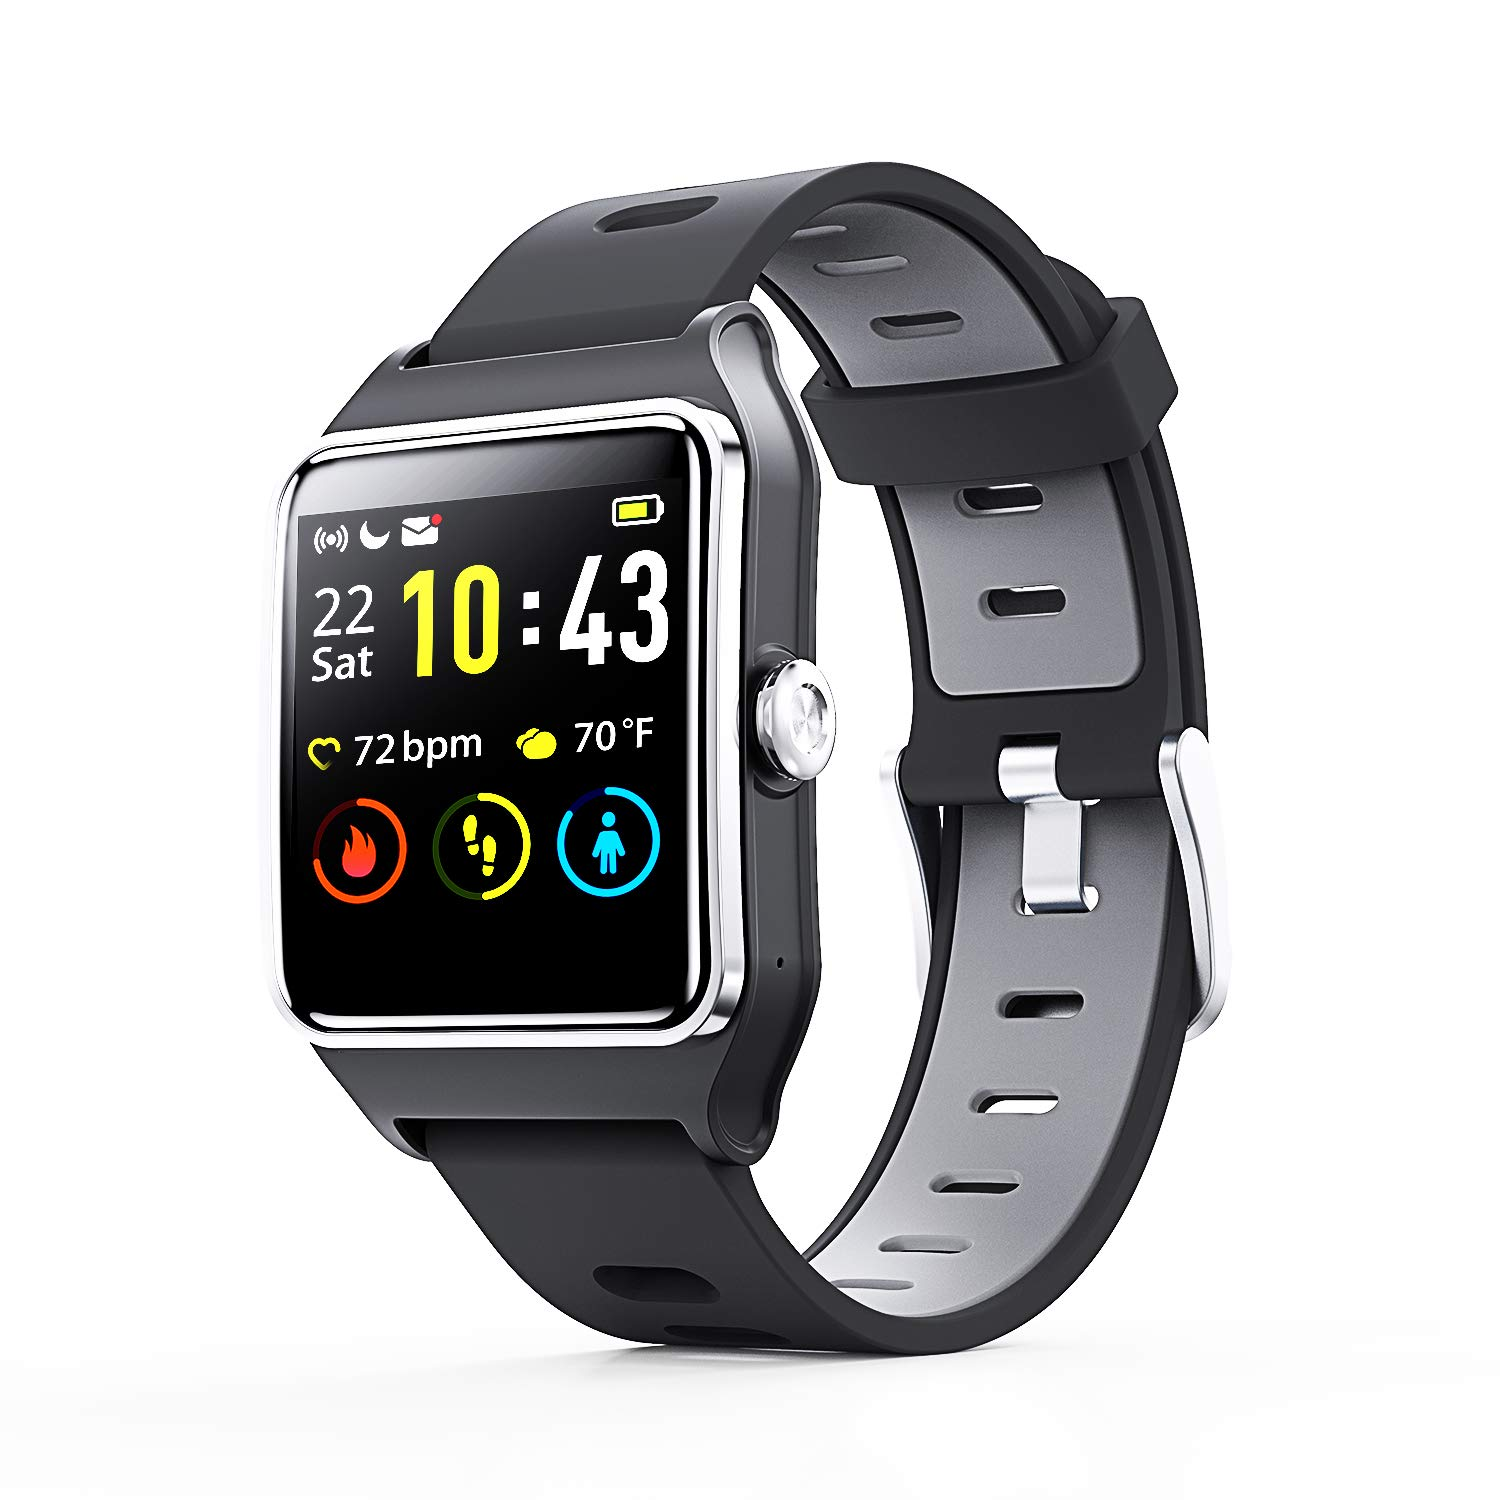 Smart Watch - ENACFIRE W2 GPS Fitness Tracker IP68 Waterproof Smartwatch, Heart Rate Monitor, Sleep Tracker, Step Counter, Activity Watches for Men, ...